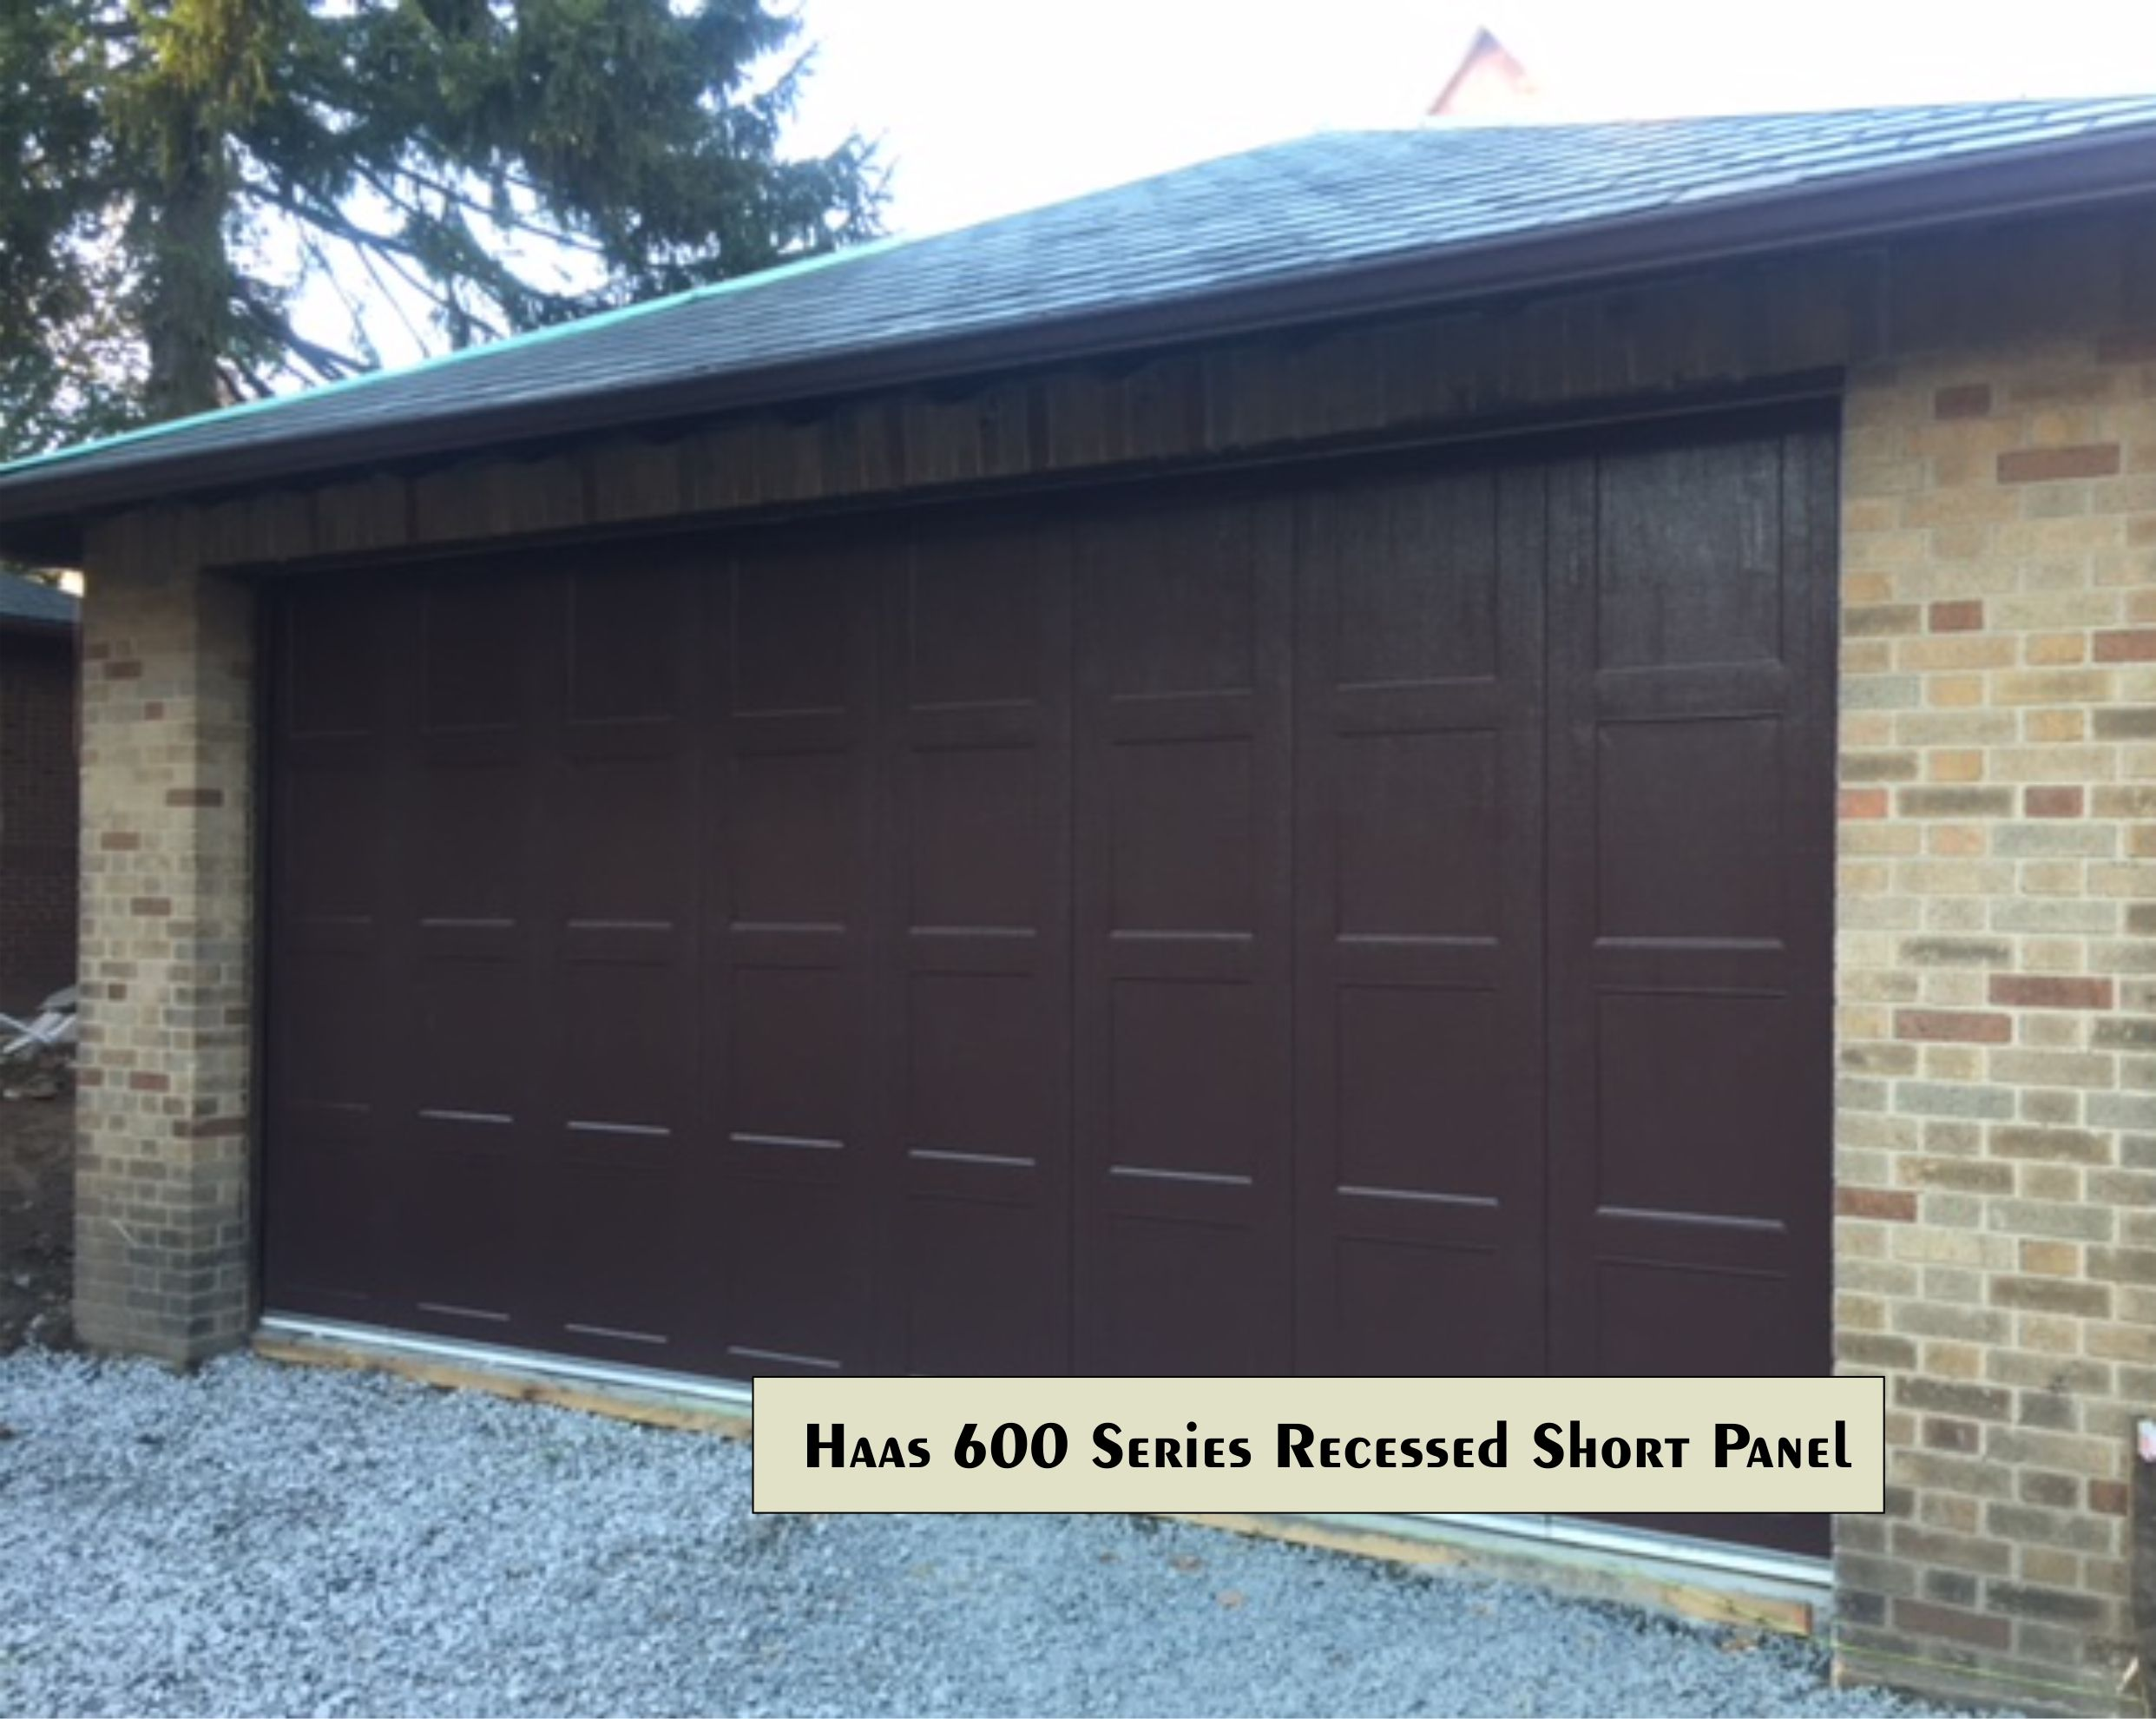 Garage Design Canada An Example Of A Traditional Recessed Panel Horizontal Garage Door